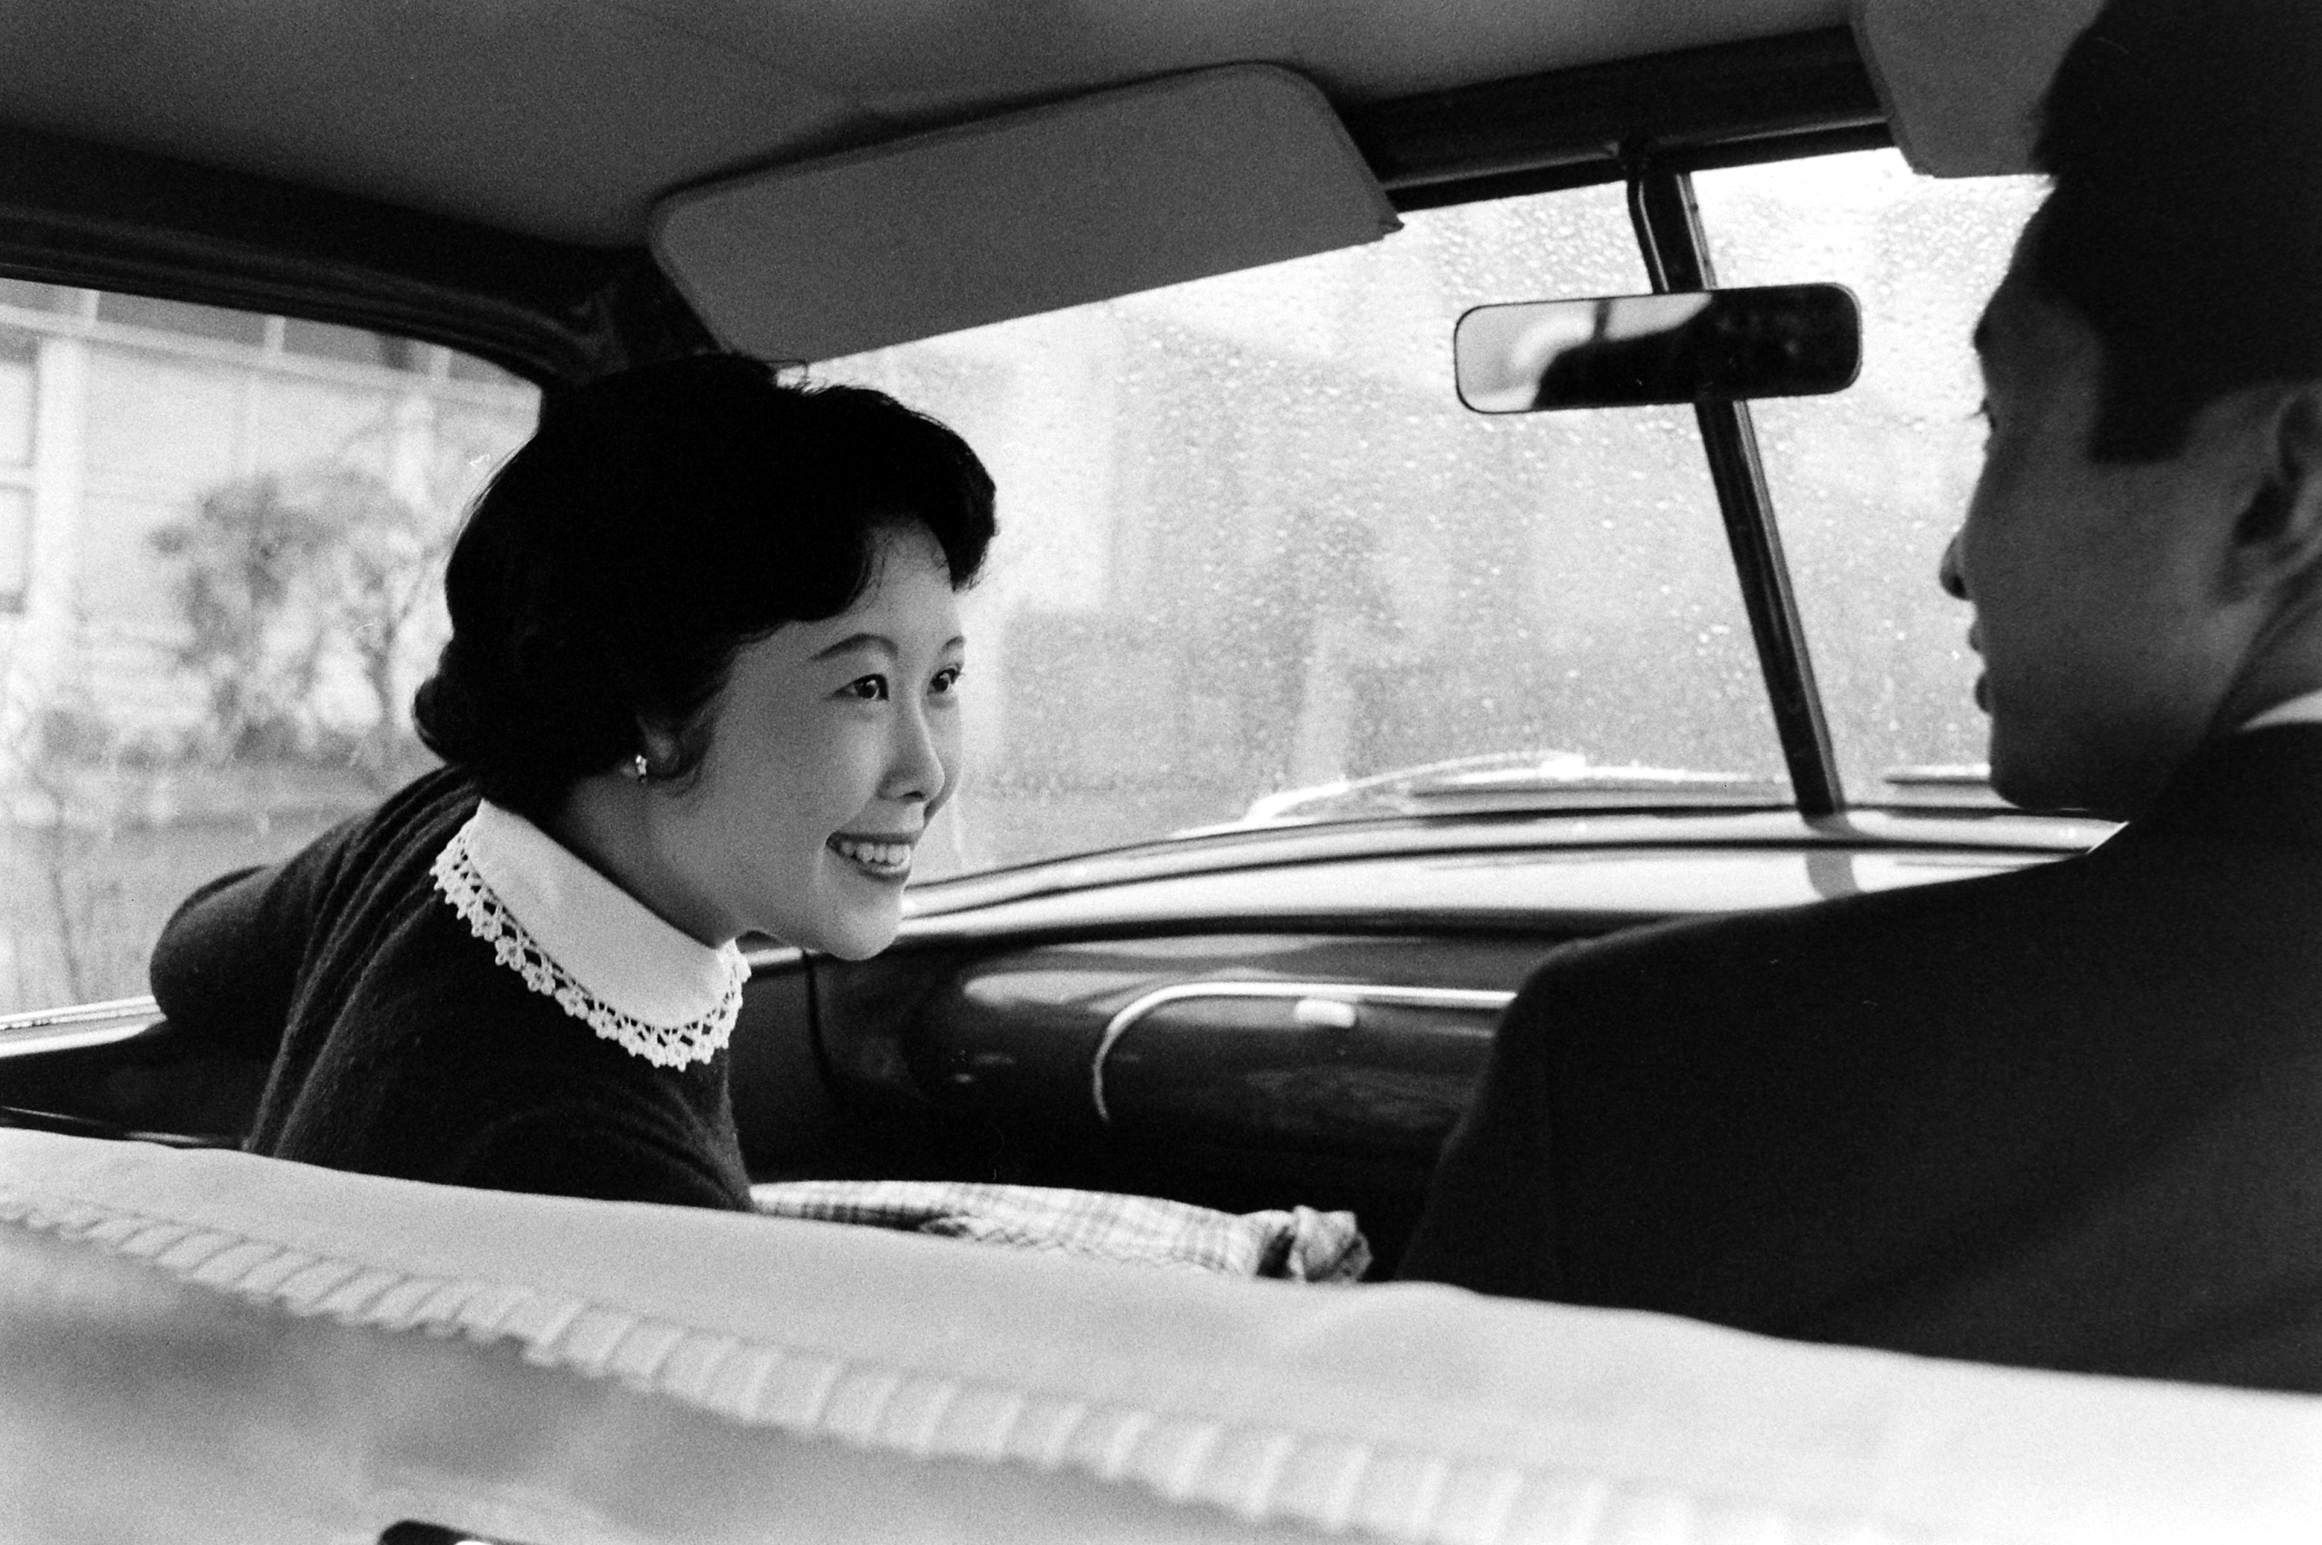 Hiroko Inayaki, left, goes for a drive with her boyfriend, Nohito Mukai.  March 1959.